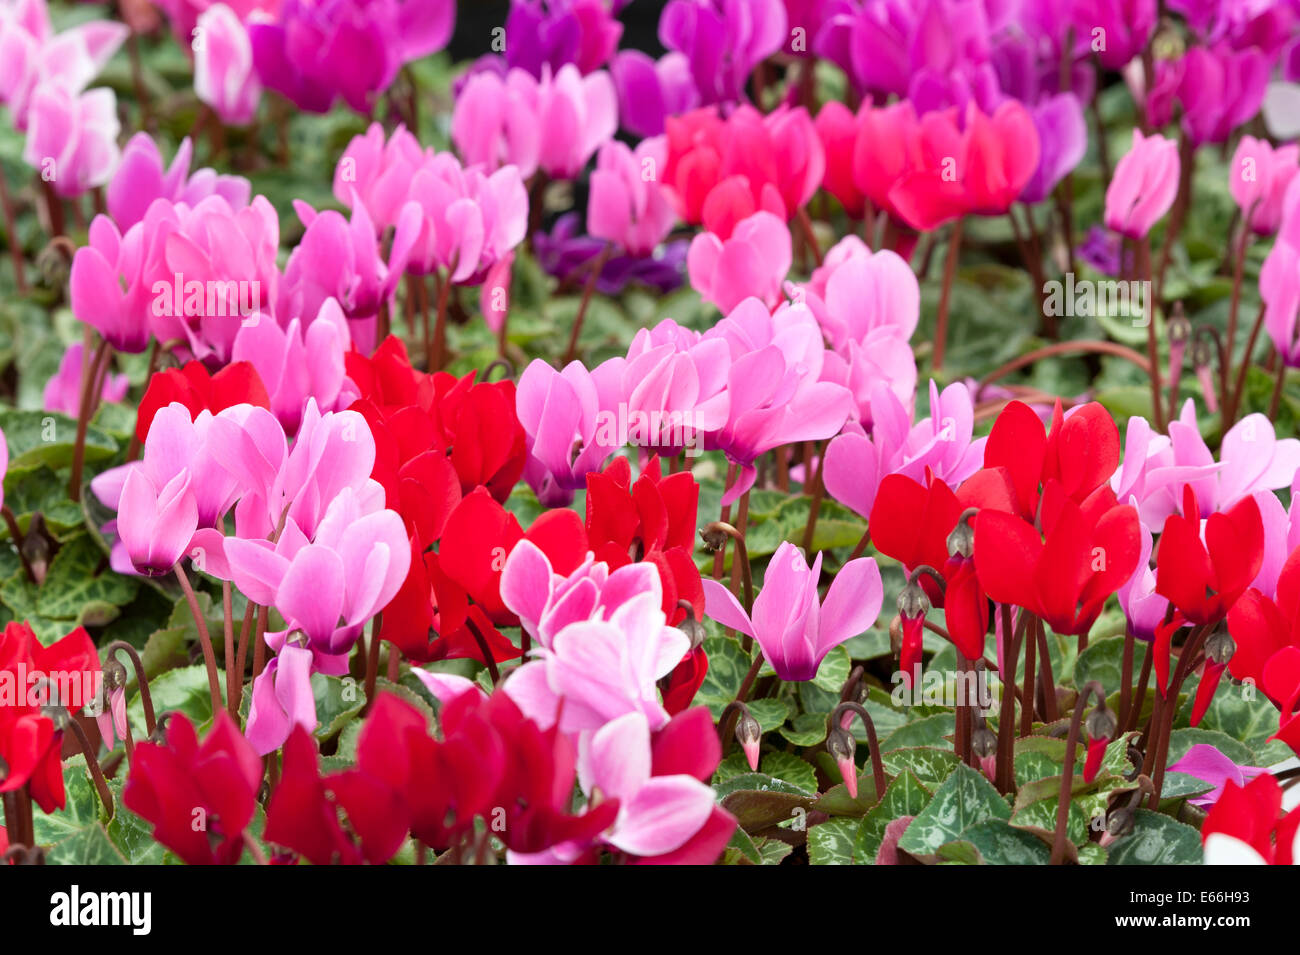 cyclamen red pink magenta white drift flowers - Stock Image